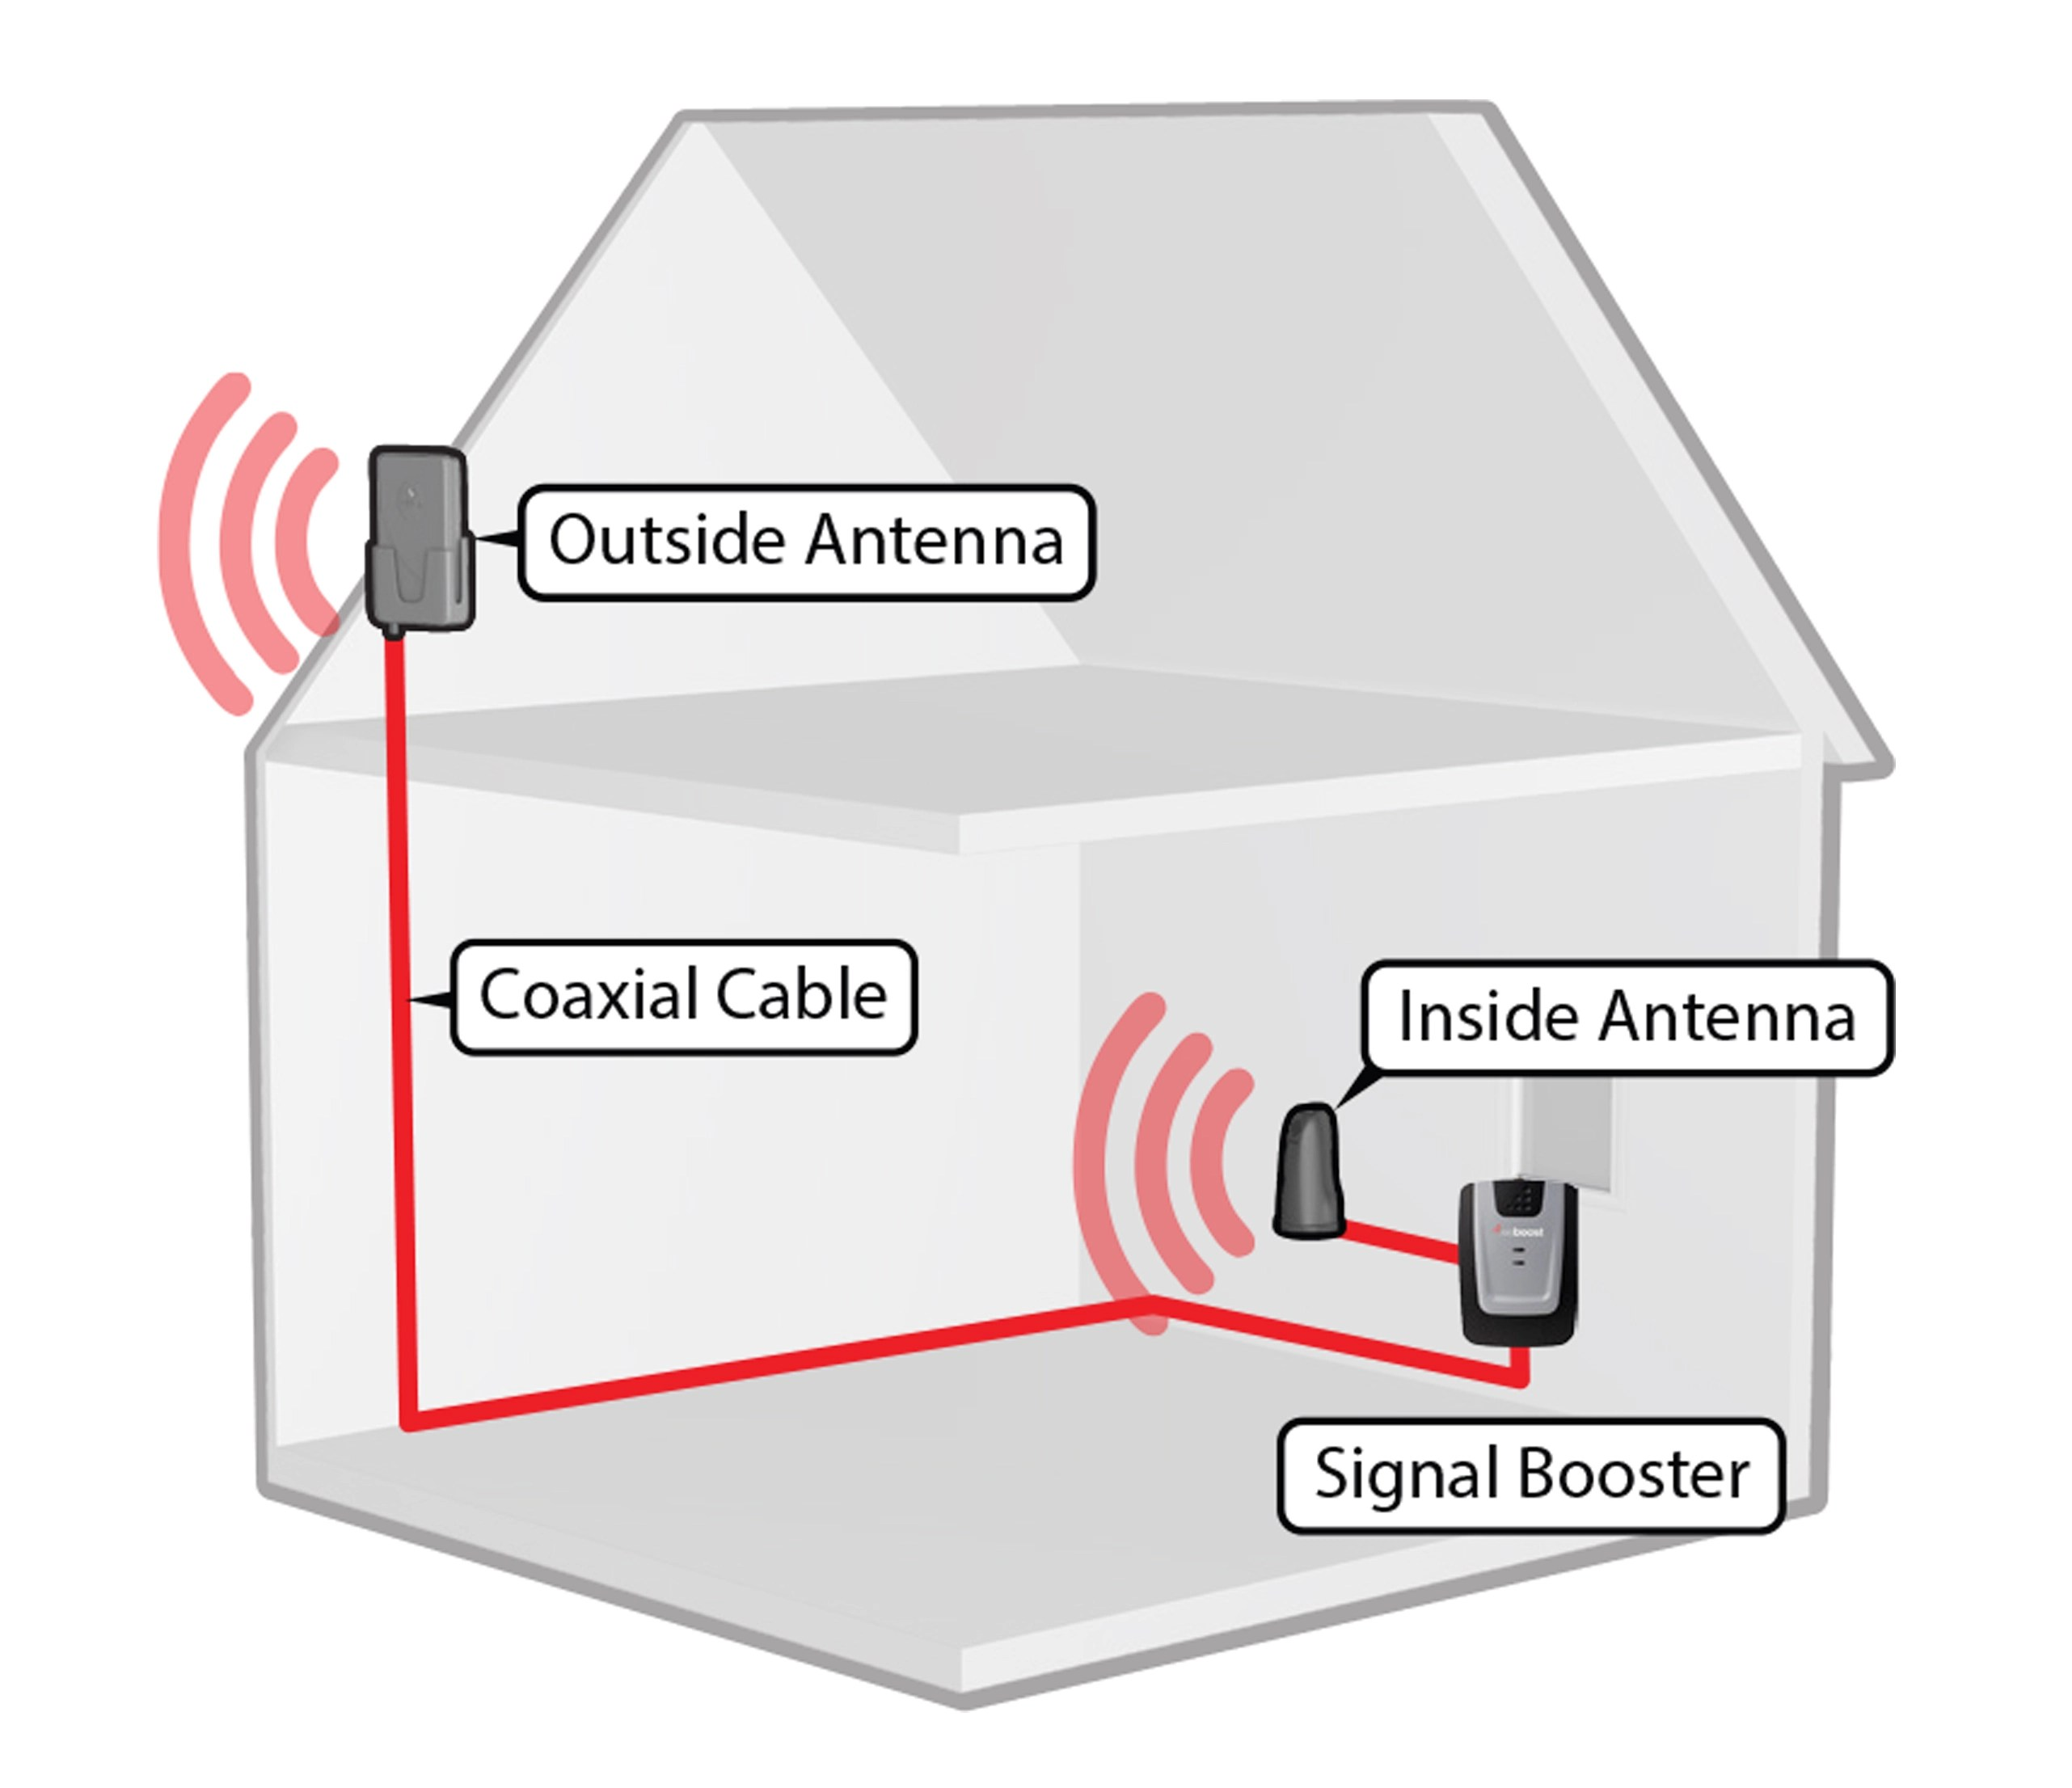 cellular phone tower signal diagram power wheels 6 volt wiring weboost 473105 home 3g cell booster kit